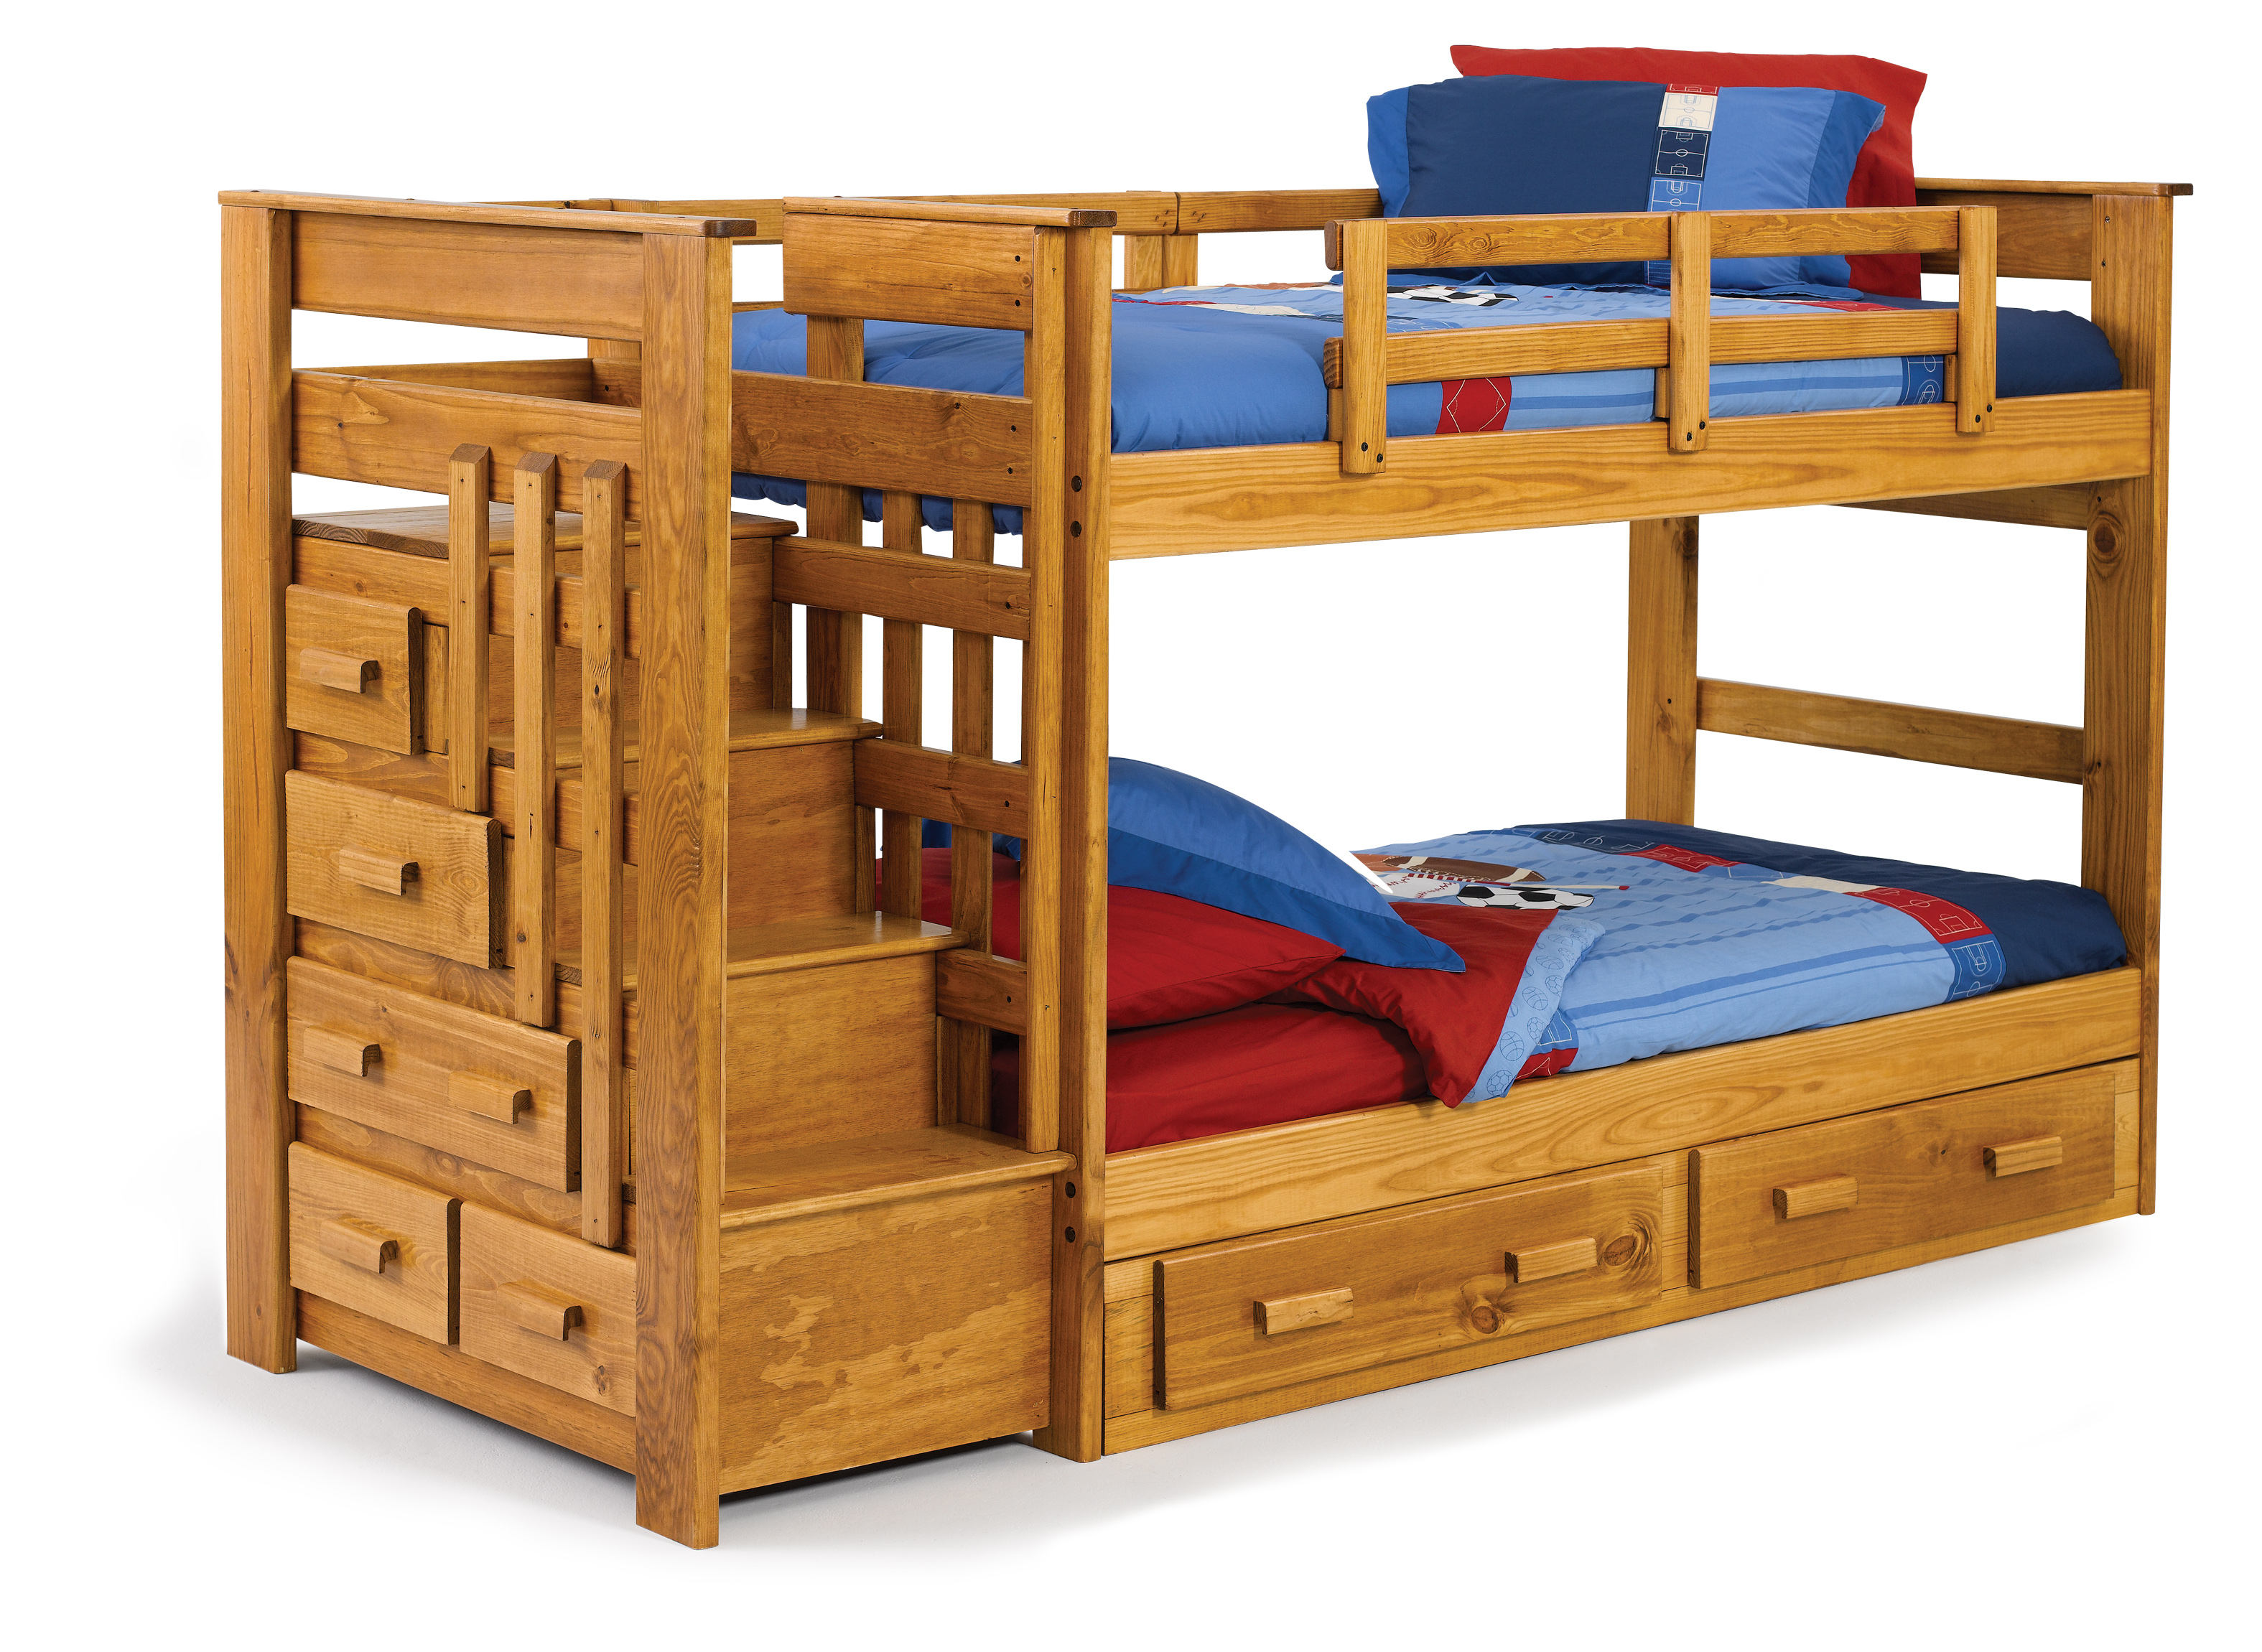 cool wood Bunk Beds With Stairs and drawers plus blue and red bedding for teen bedroom decor ideas